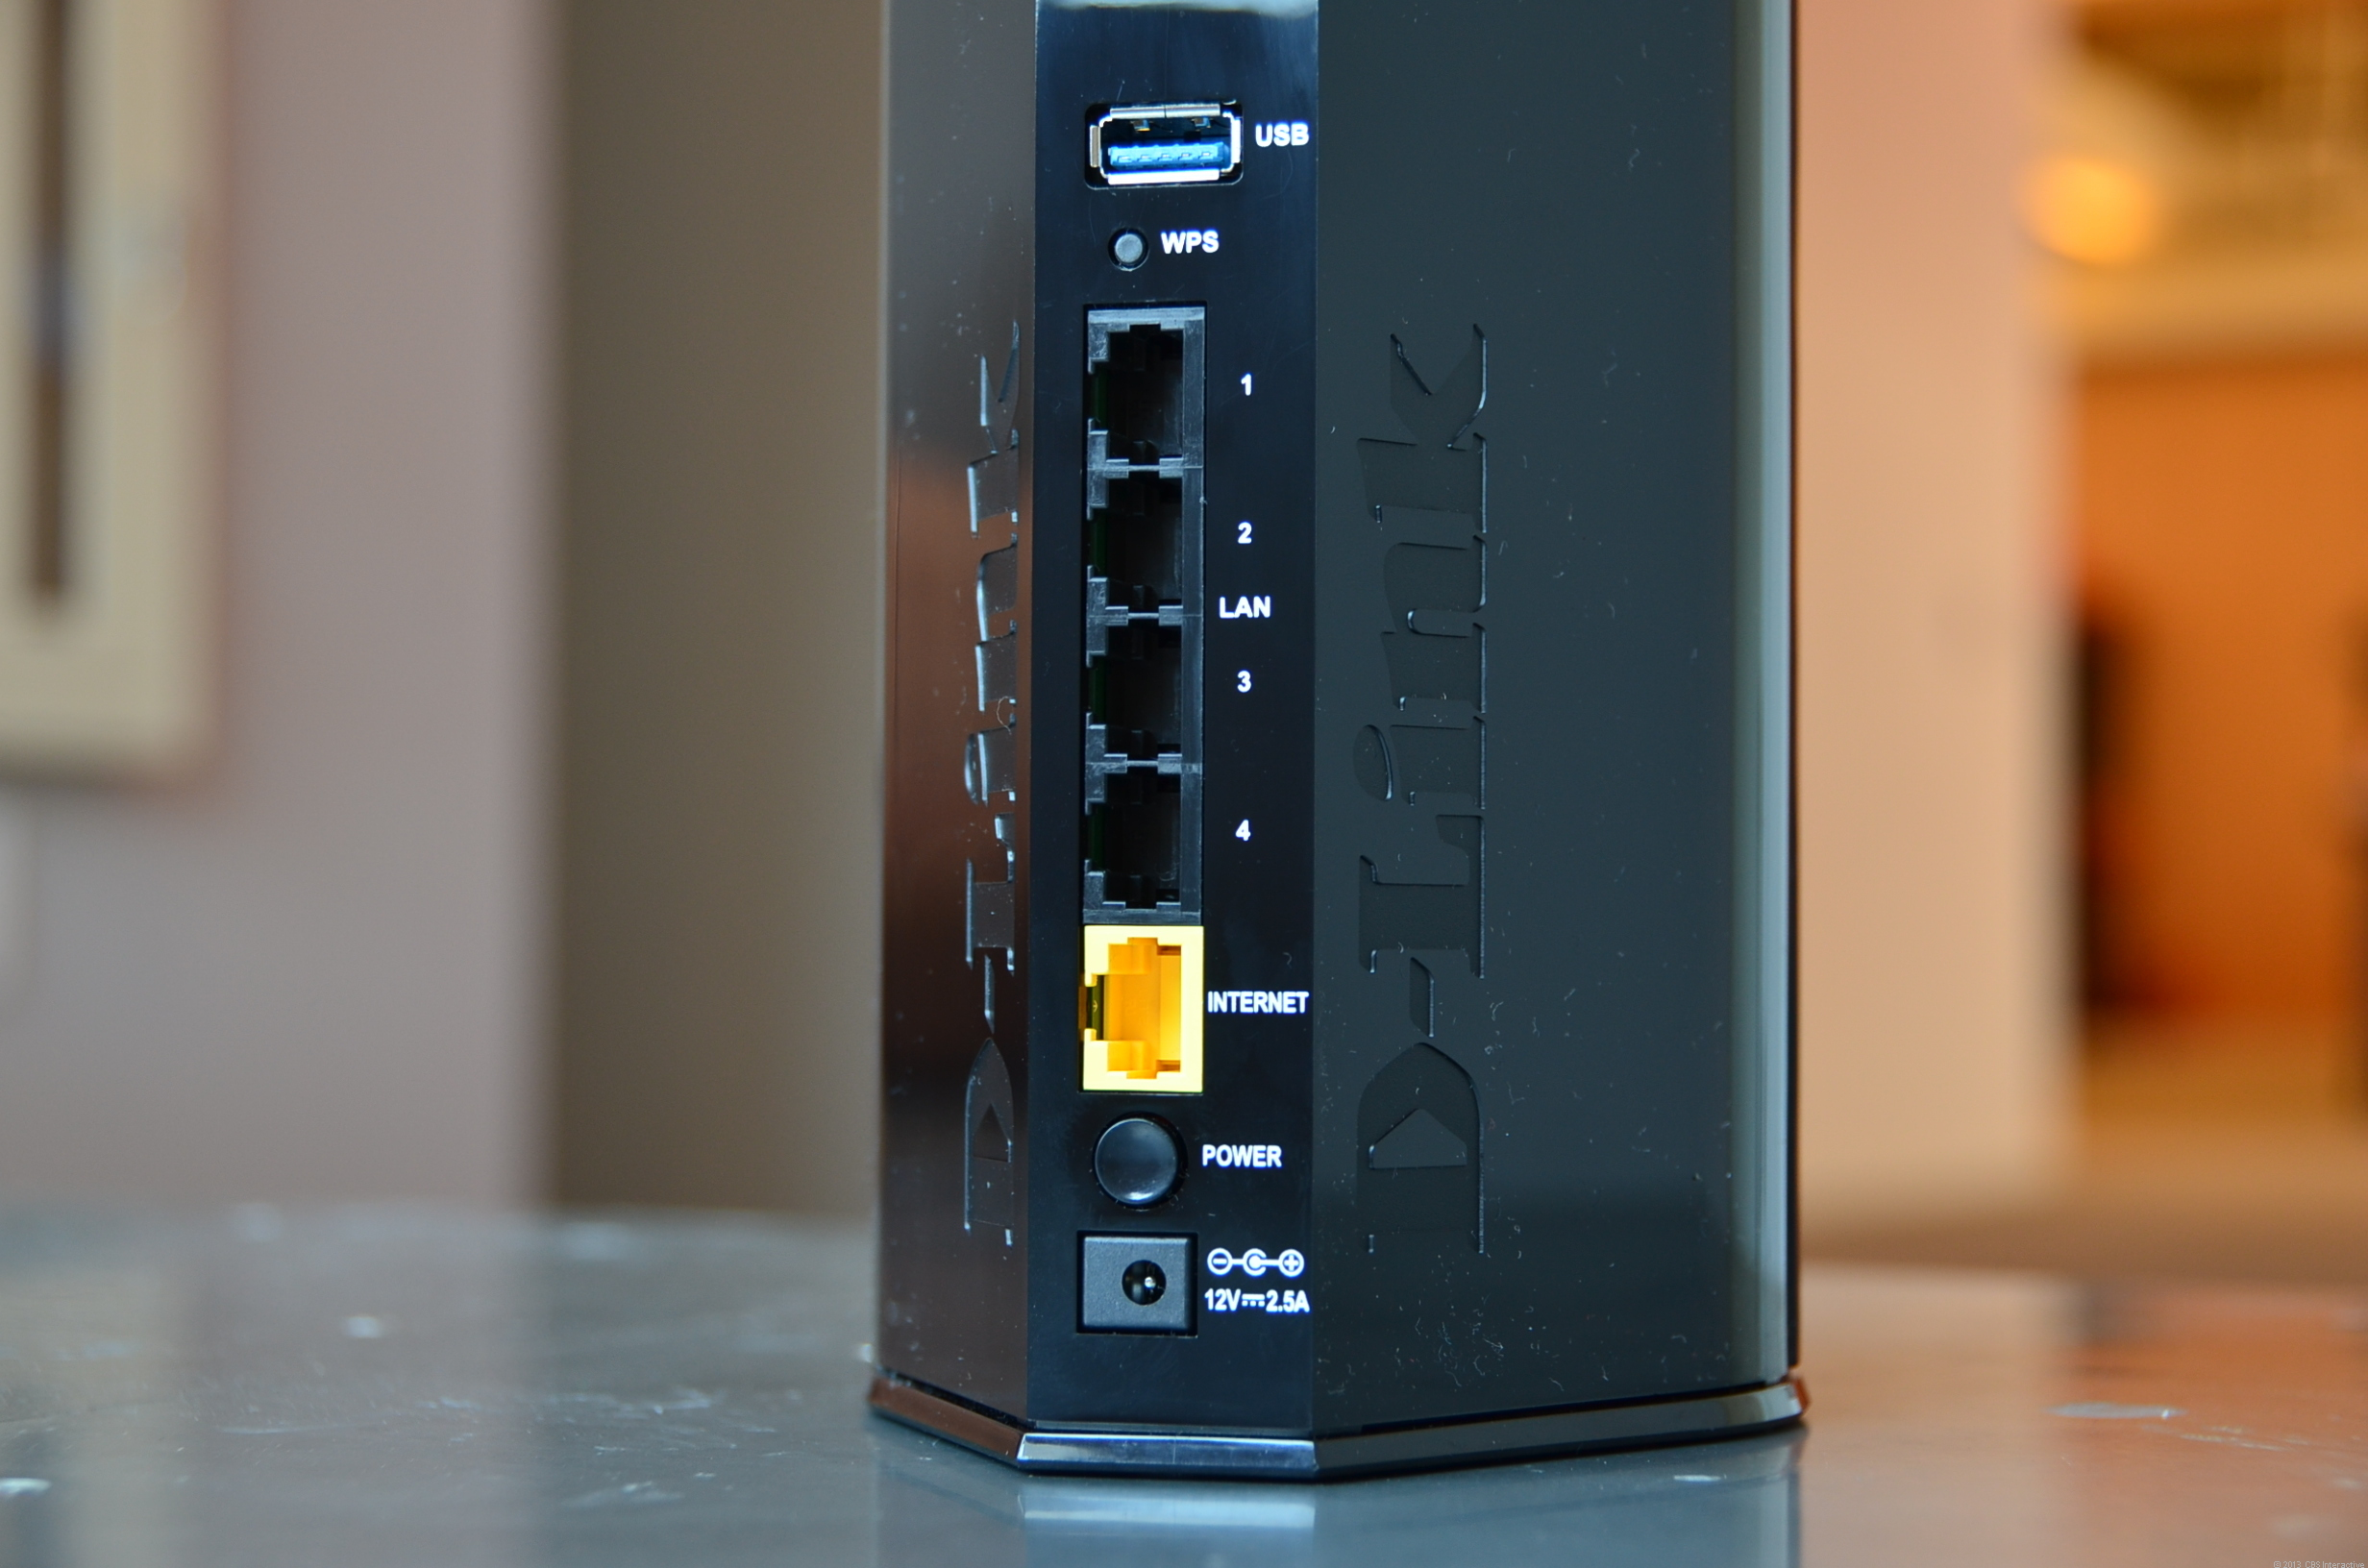 The cylindrical DIR-868L comes with four gigabit LAN ports, one gigabit WAN port, and a USB 3.0 port.